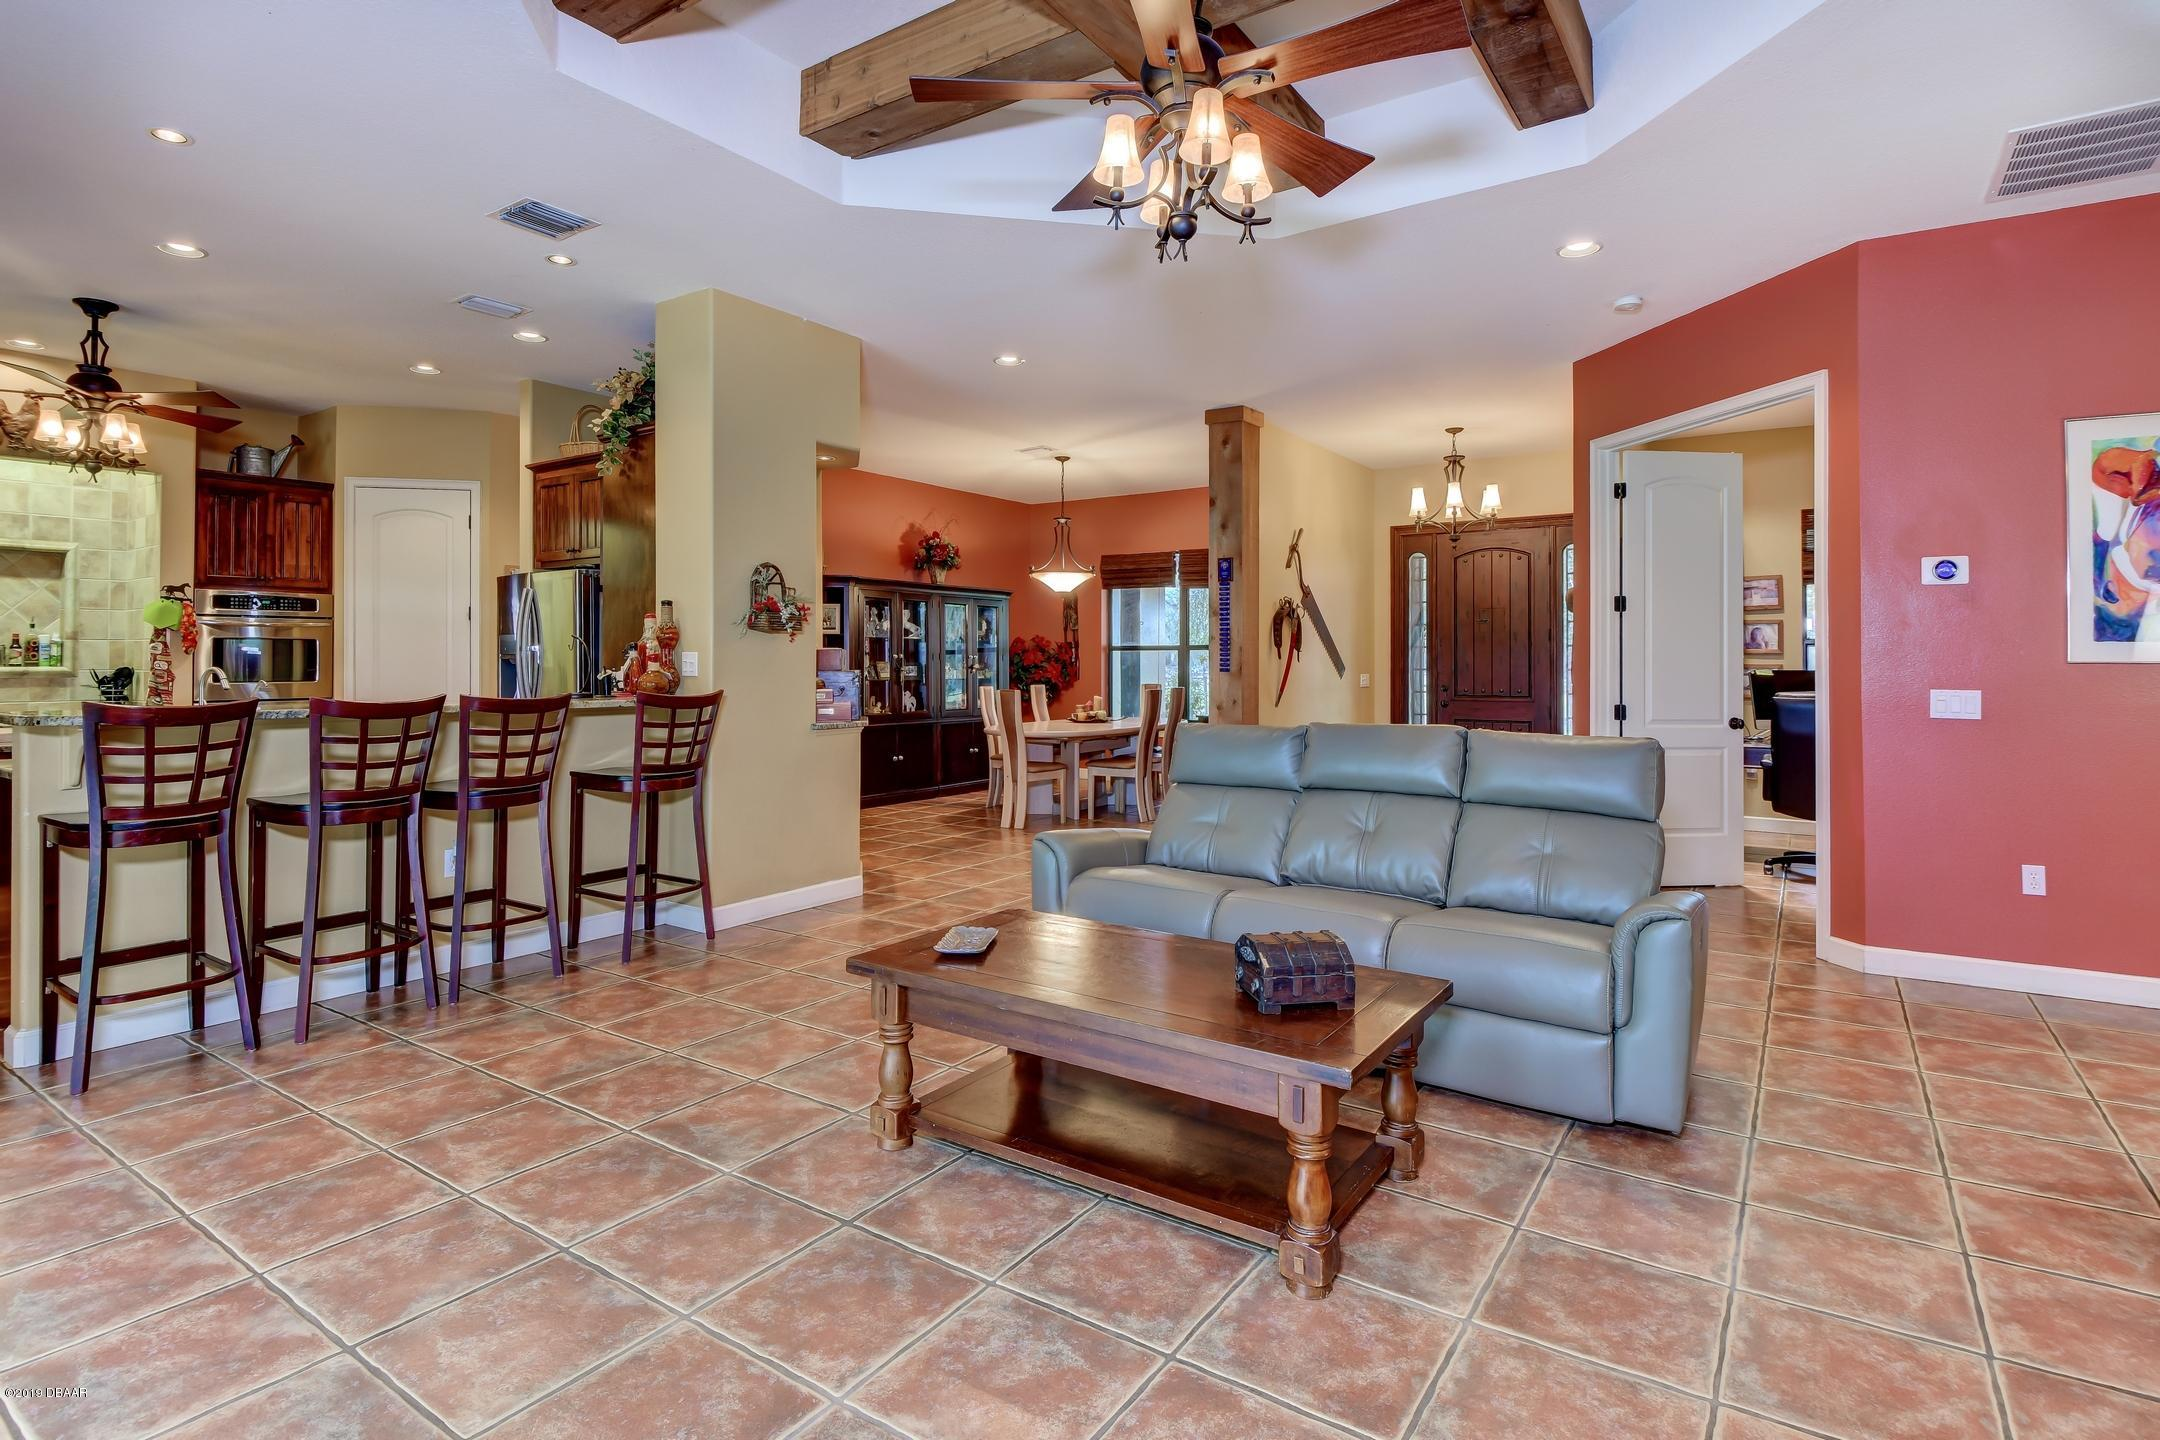 2470 Place Pond DeLeon Springs - 2